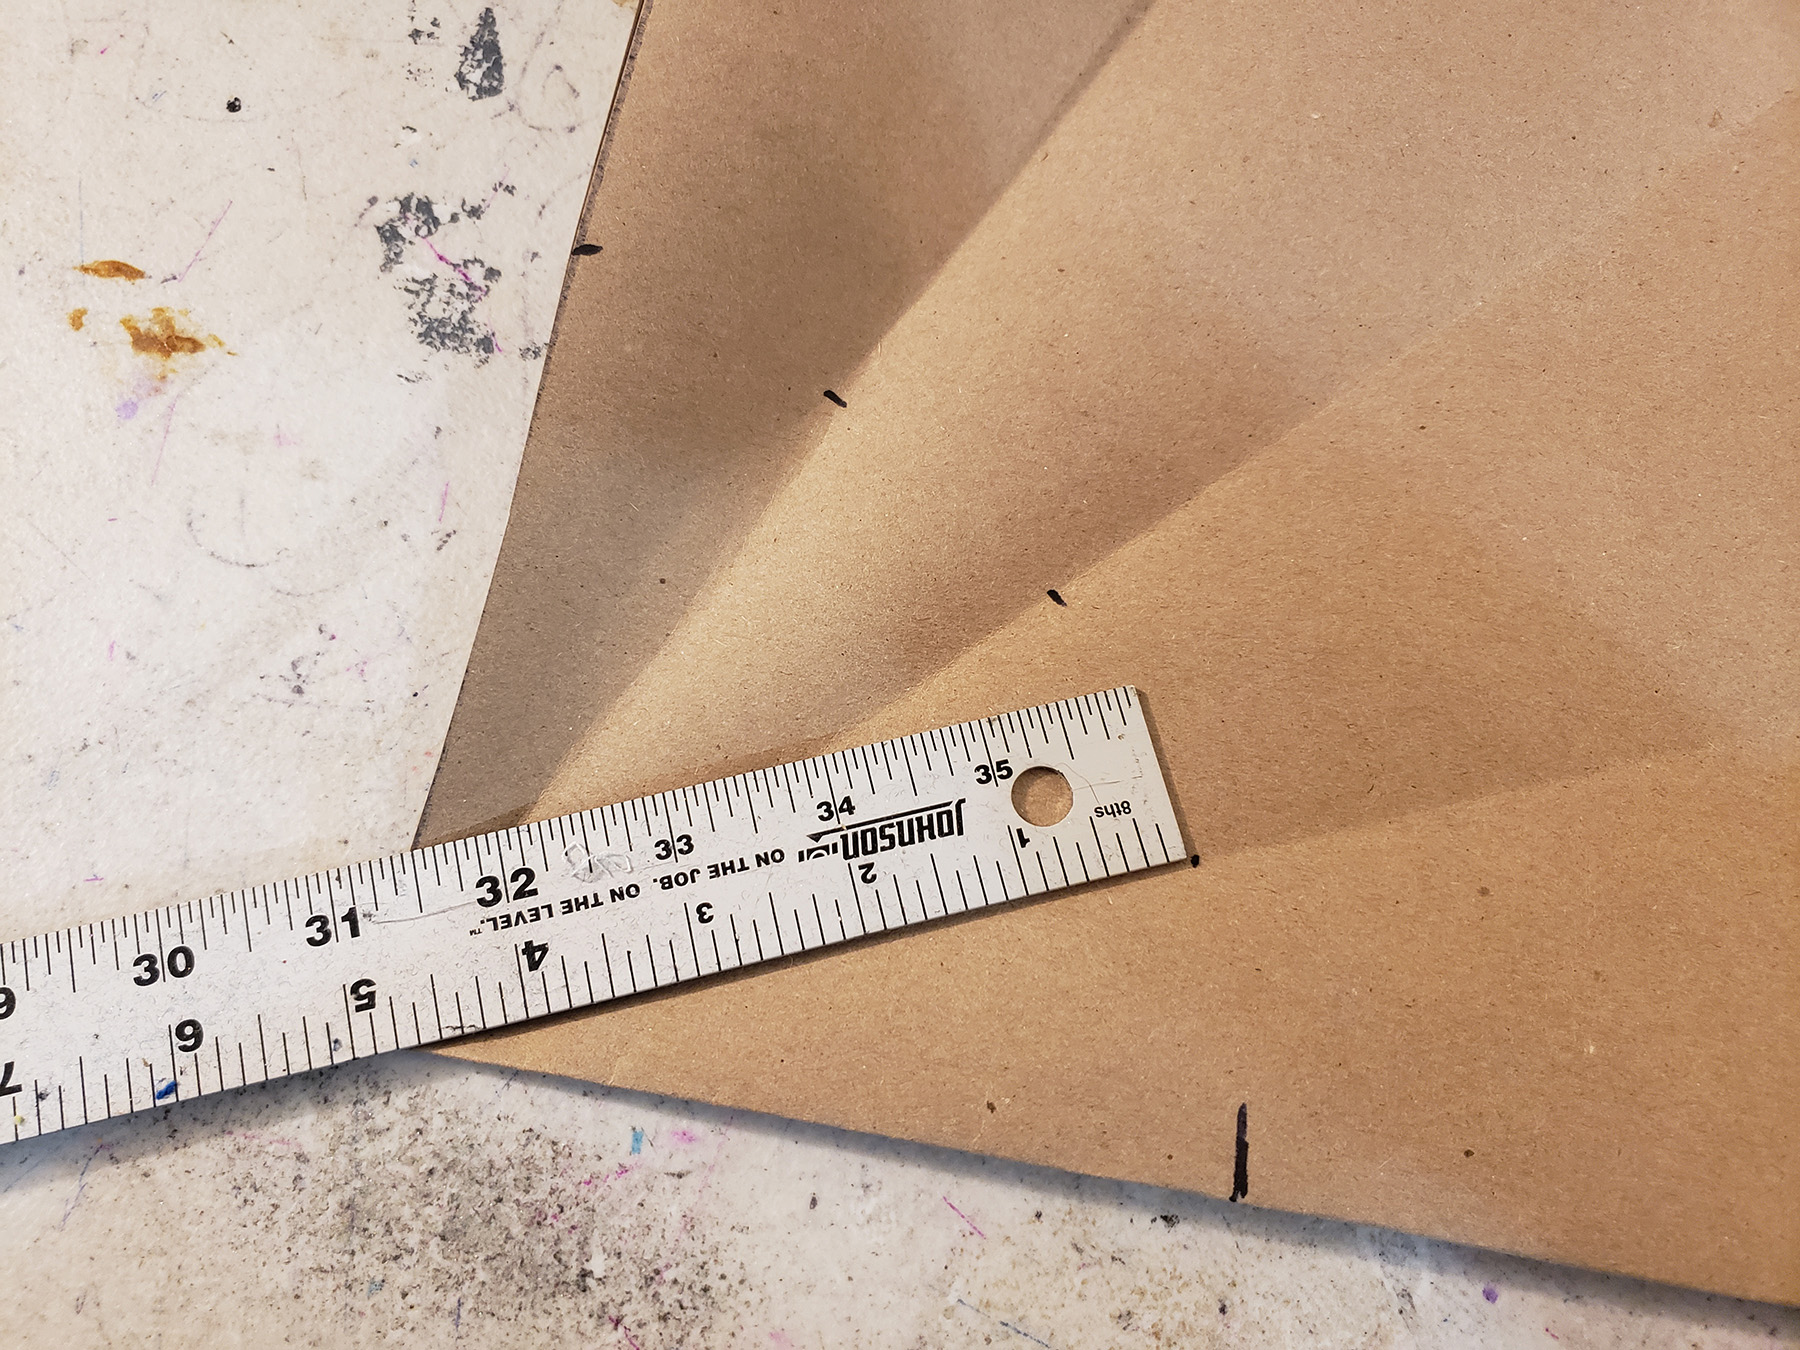 A metal ruler is shown on a piece of brown craft paper, with several black marks along fold lines.